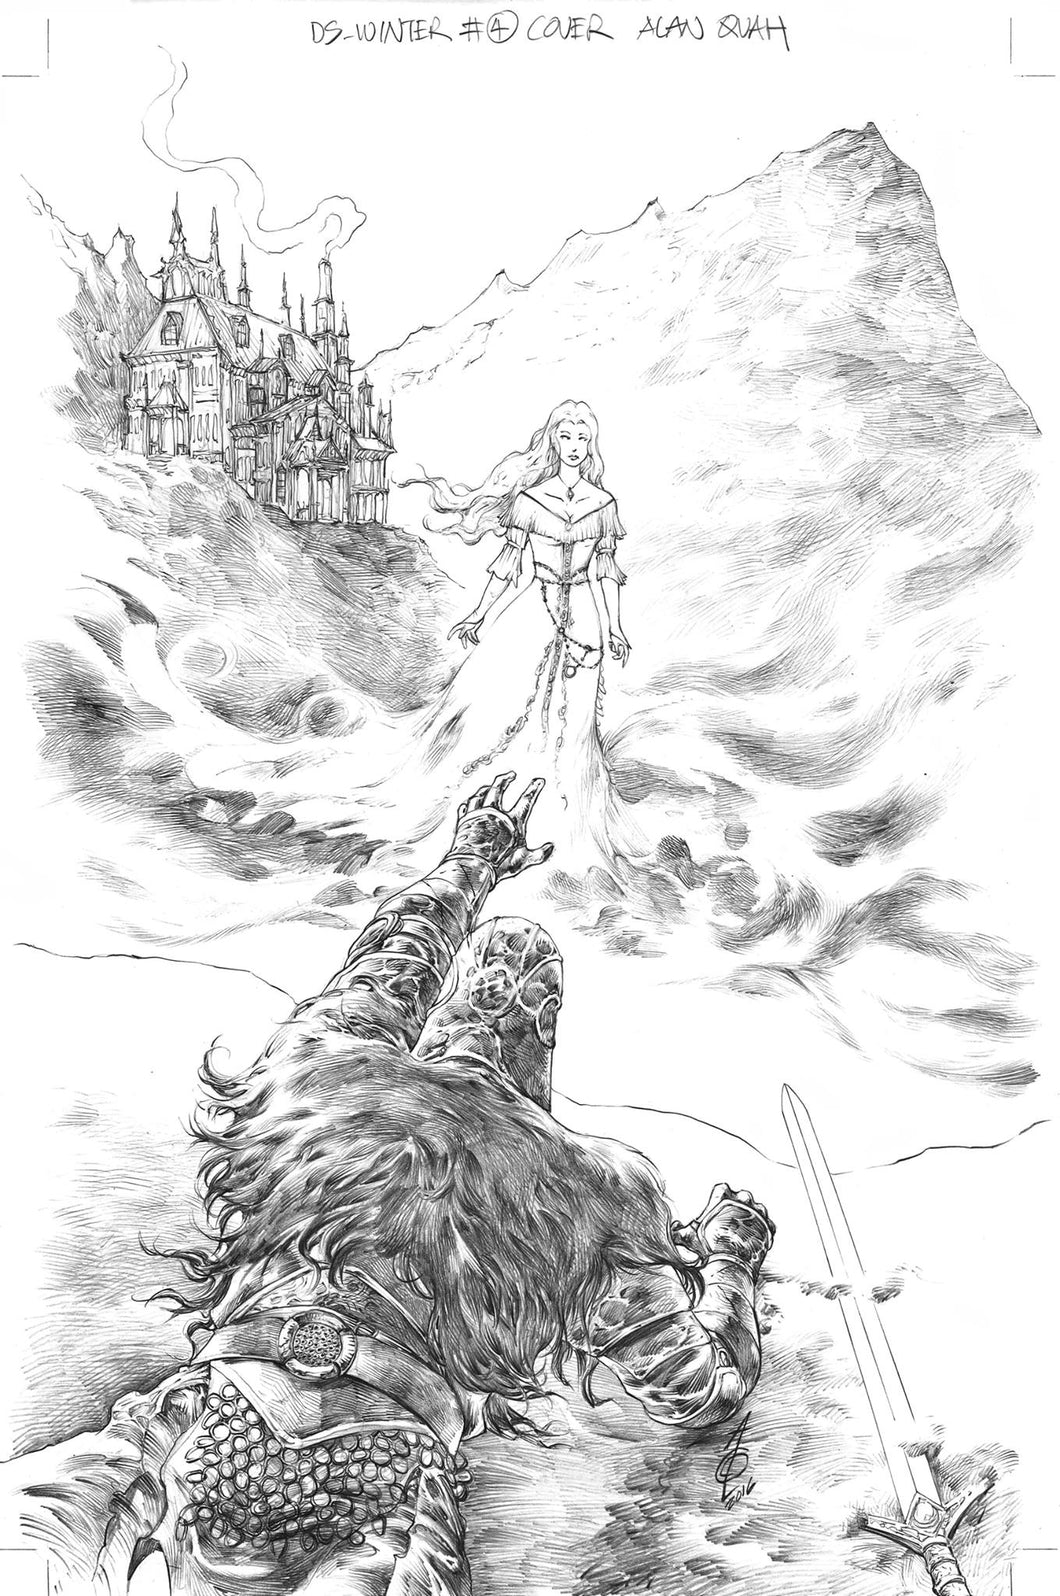 Alan Quah Original Art Dark Souls Winter's Spite #4 Cover